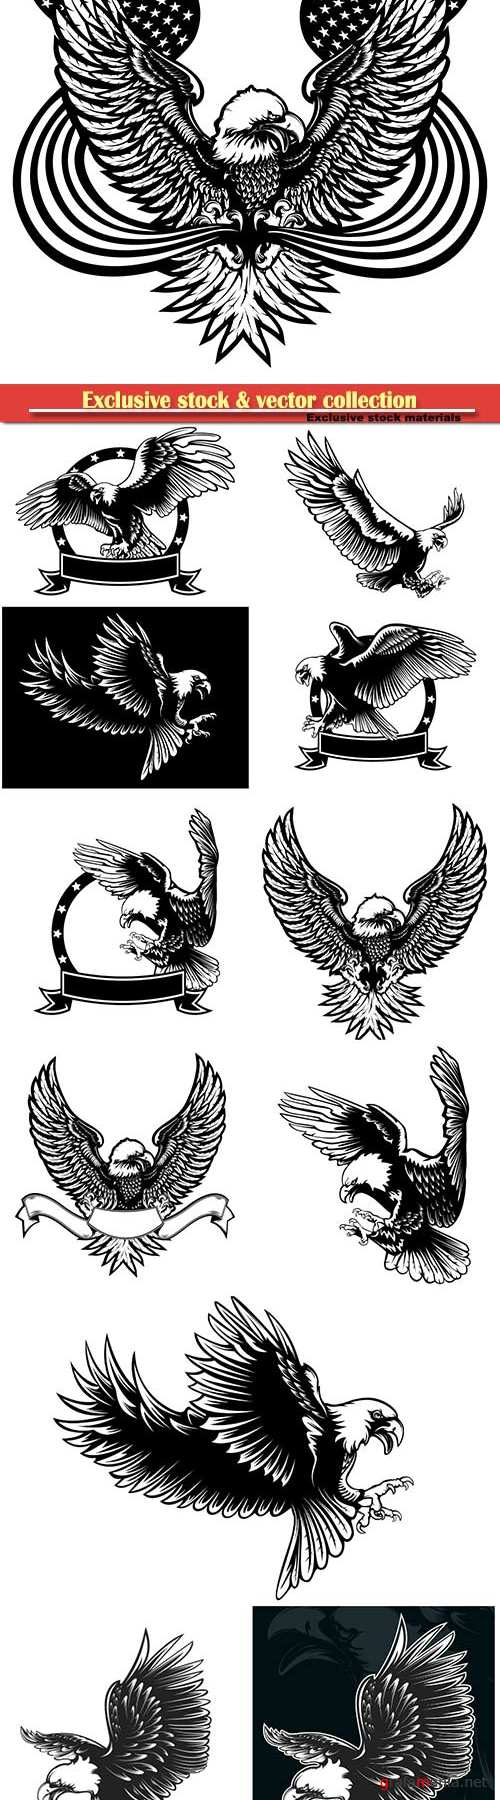 Eagle emblem vector illustration, world symbol of freedom and independence